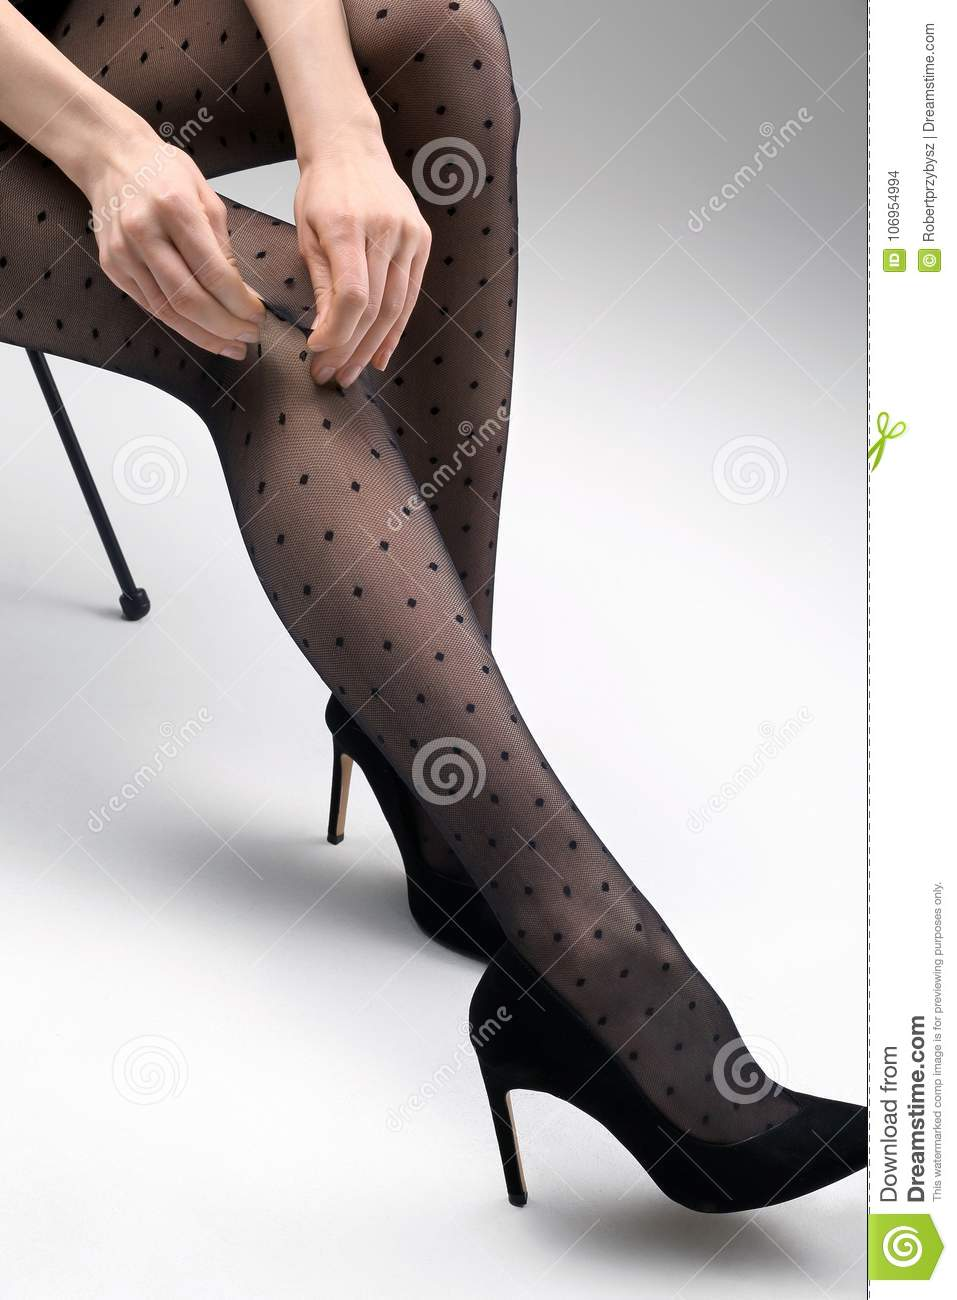 Seems remarkable her feet in pantyhose version opinion you